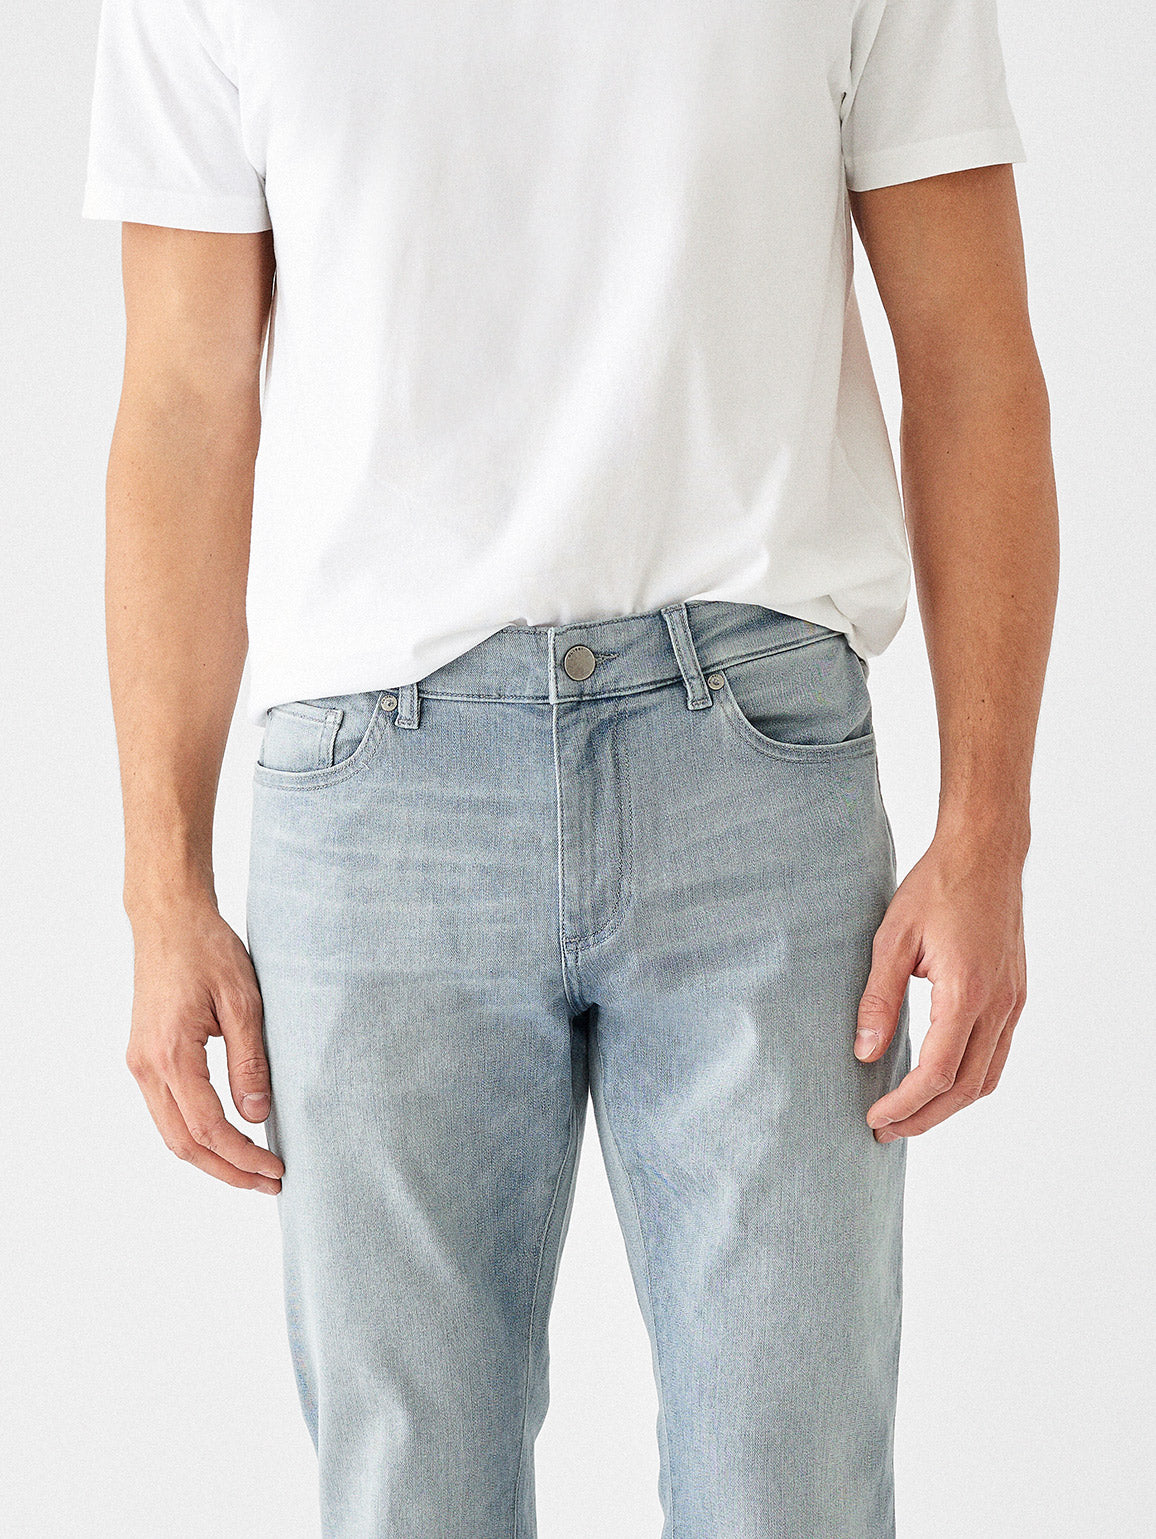 Cooper Tapered Slim | Merriment